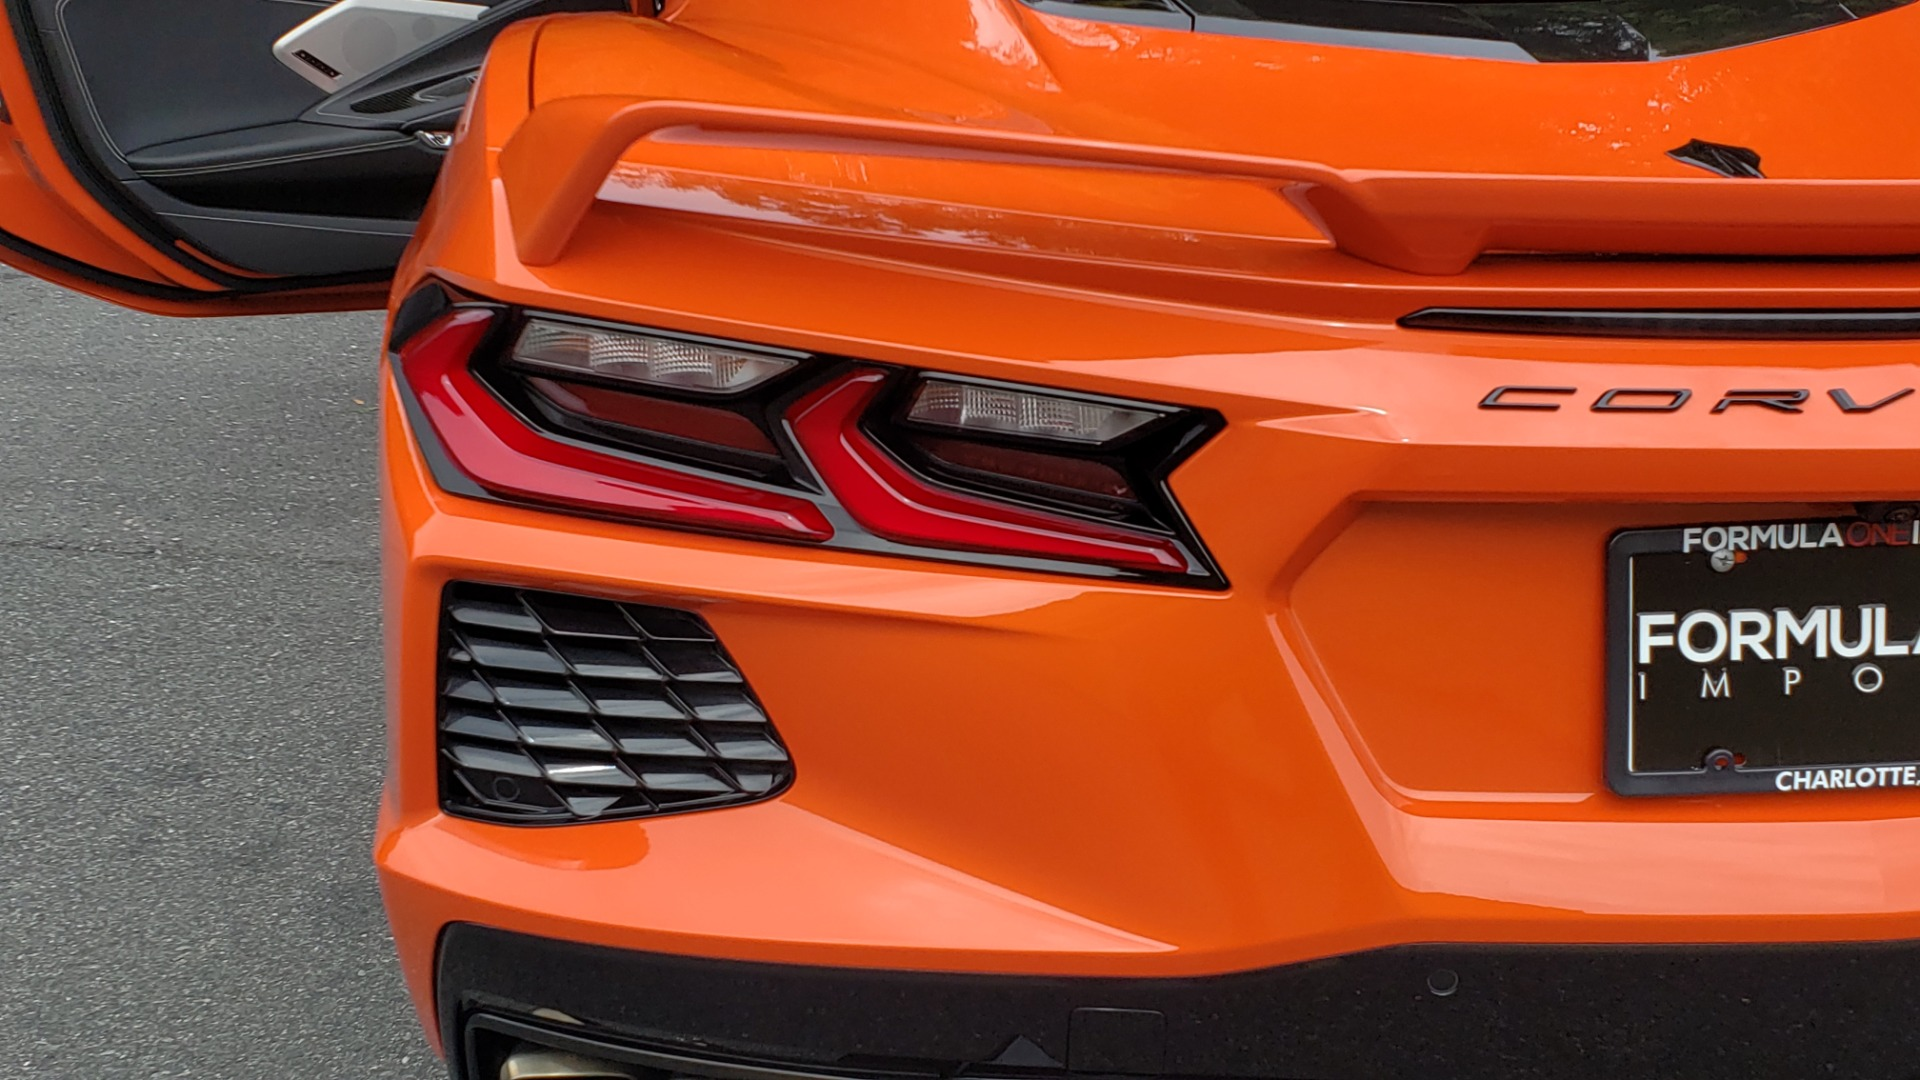 Used 2020 Chevrolet CORVETTE C8 STINGRAY 2LT / 6.2L V8 / 8-SPD AUTO / NAV / BOSE / REARVIEW / DATA RECOR for sale Sold at Formula Imports in Charlotte NC 28227 31